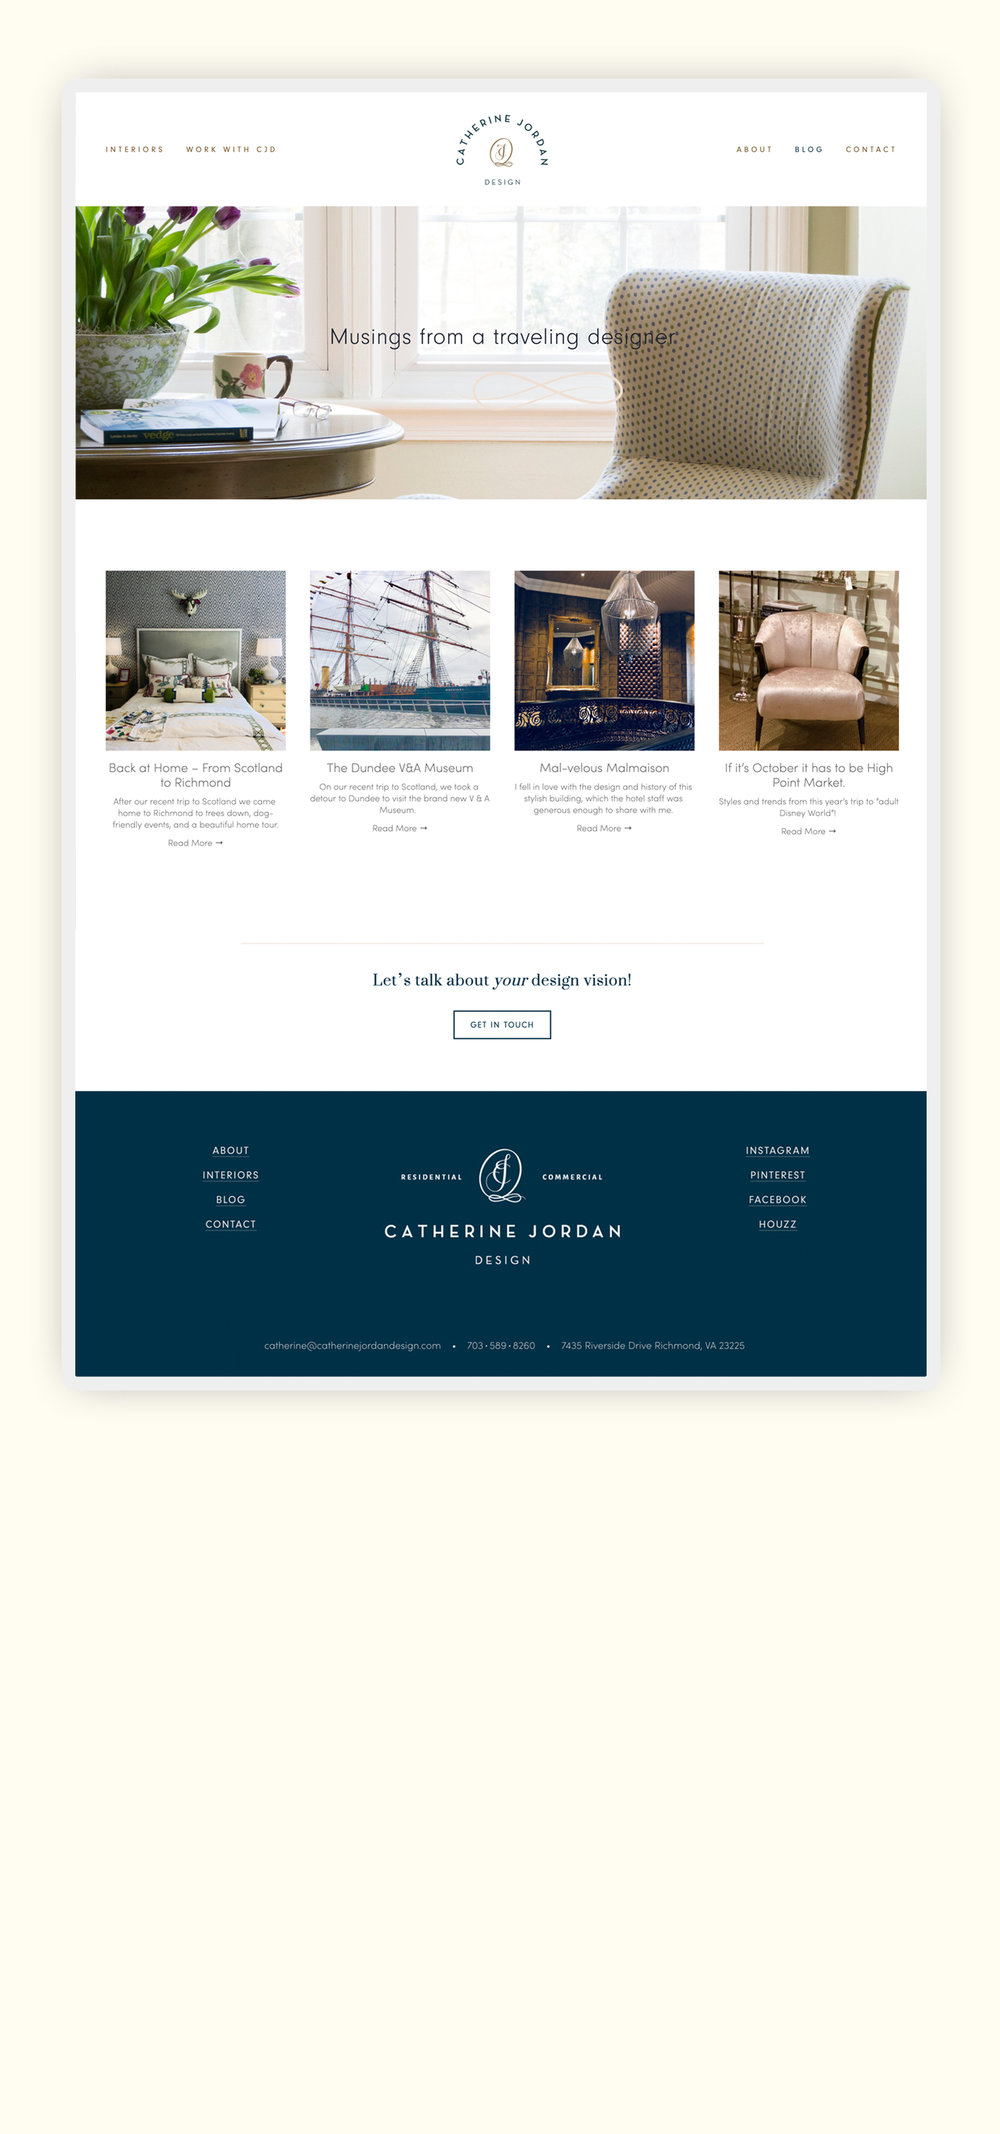 CJD_website-mockup-blog.jpg